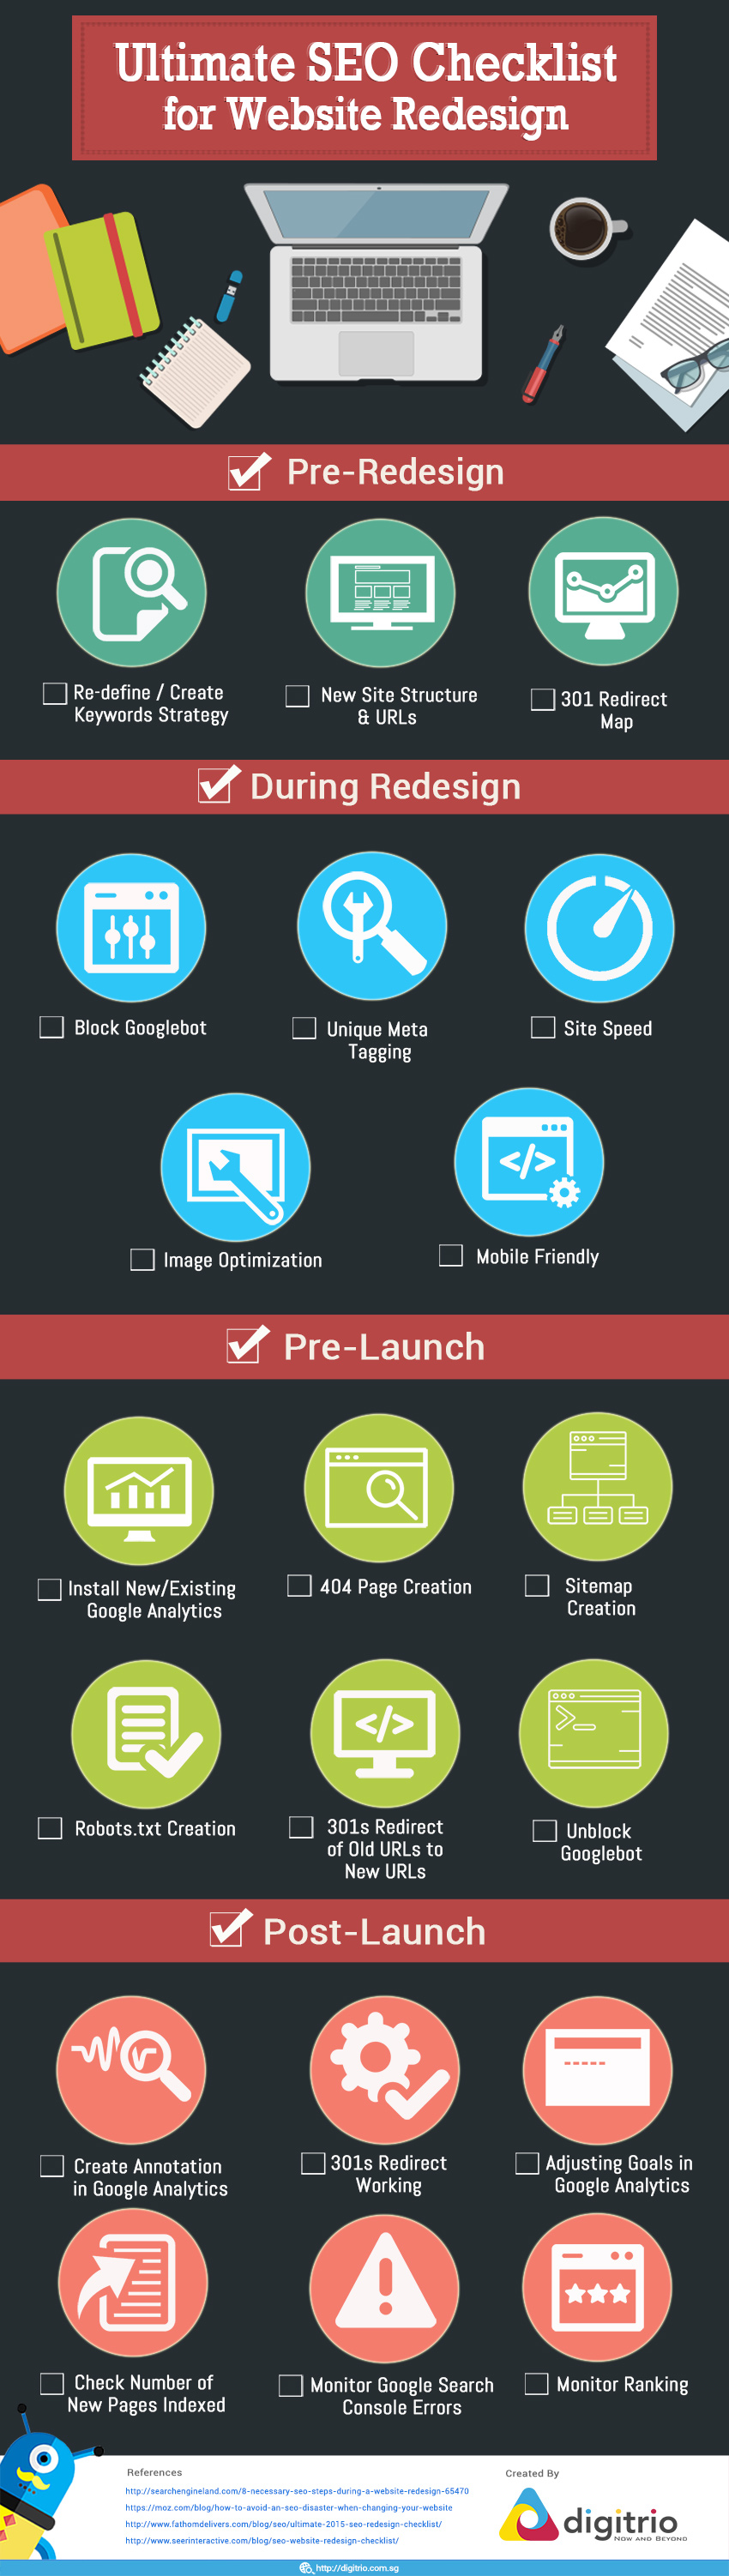 ultimate-seo-checklist-website-redesign-infographic